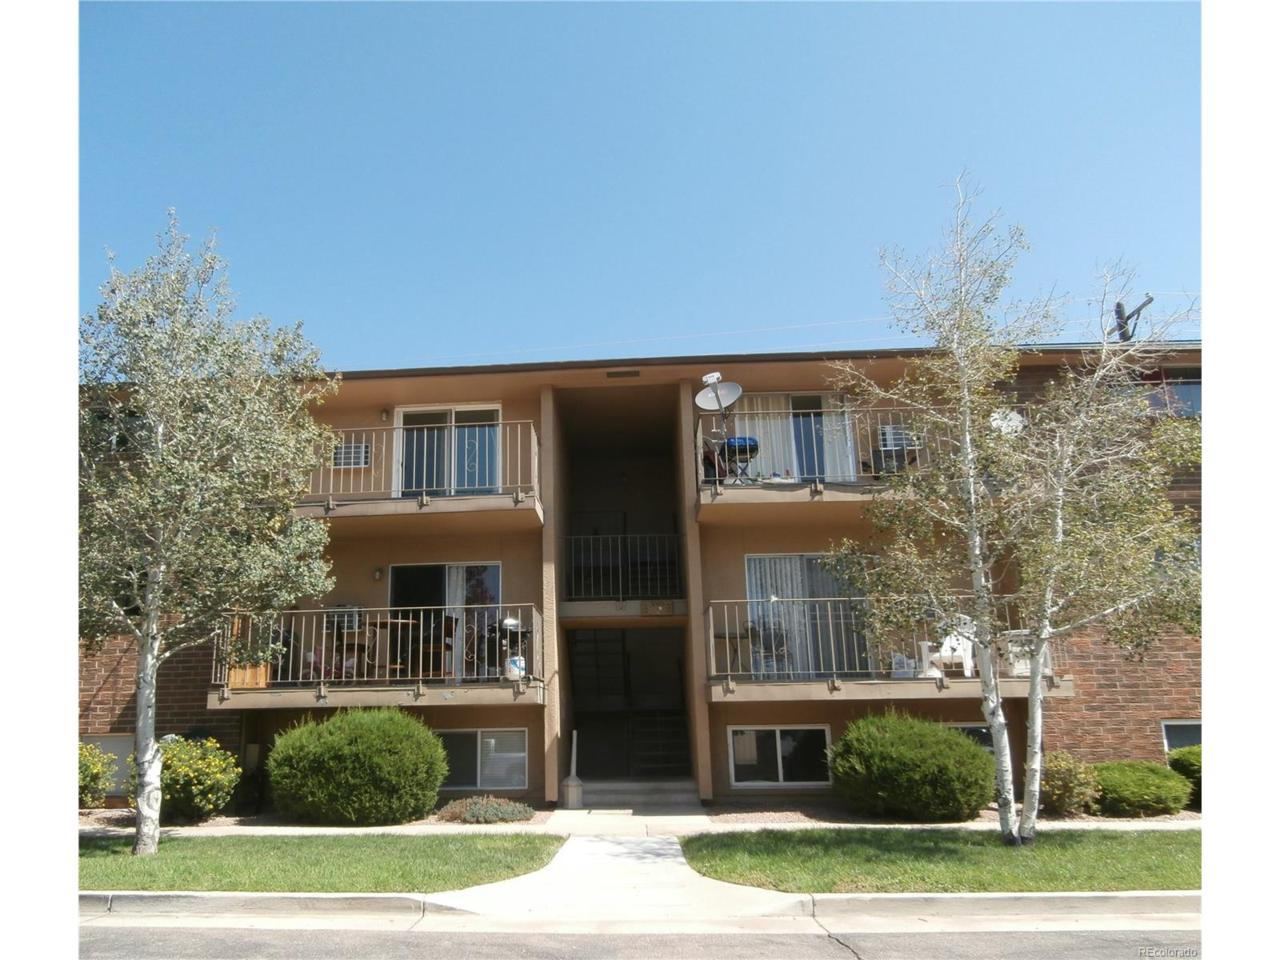 3010 E Bijou Street 4-C, Colorado Springs, CO 80909 (MLS #2569977) :: 8z Real Estate